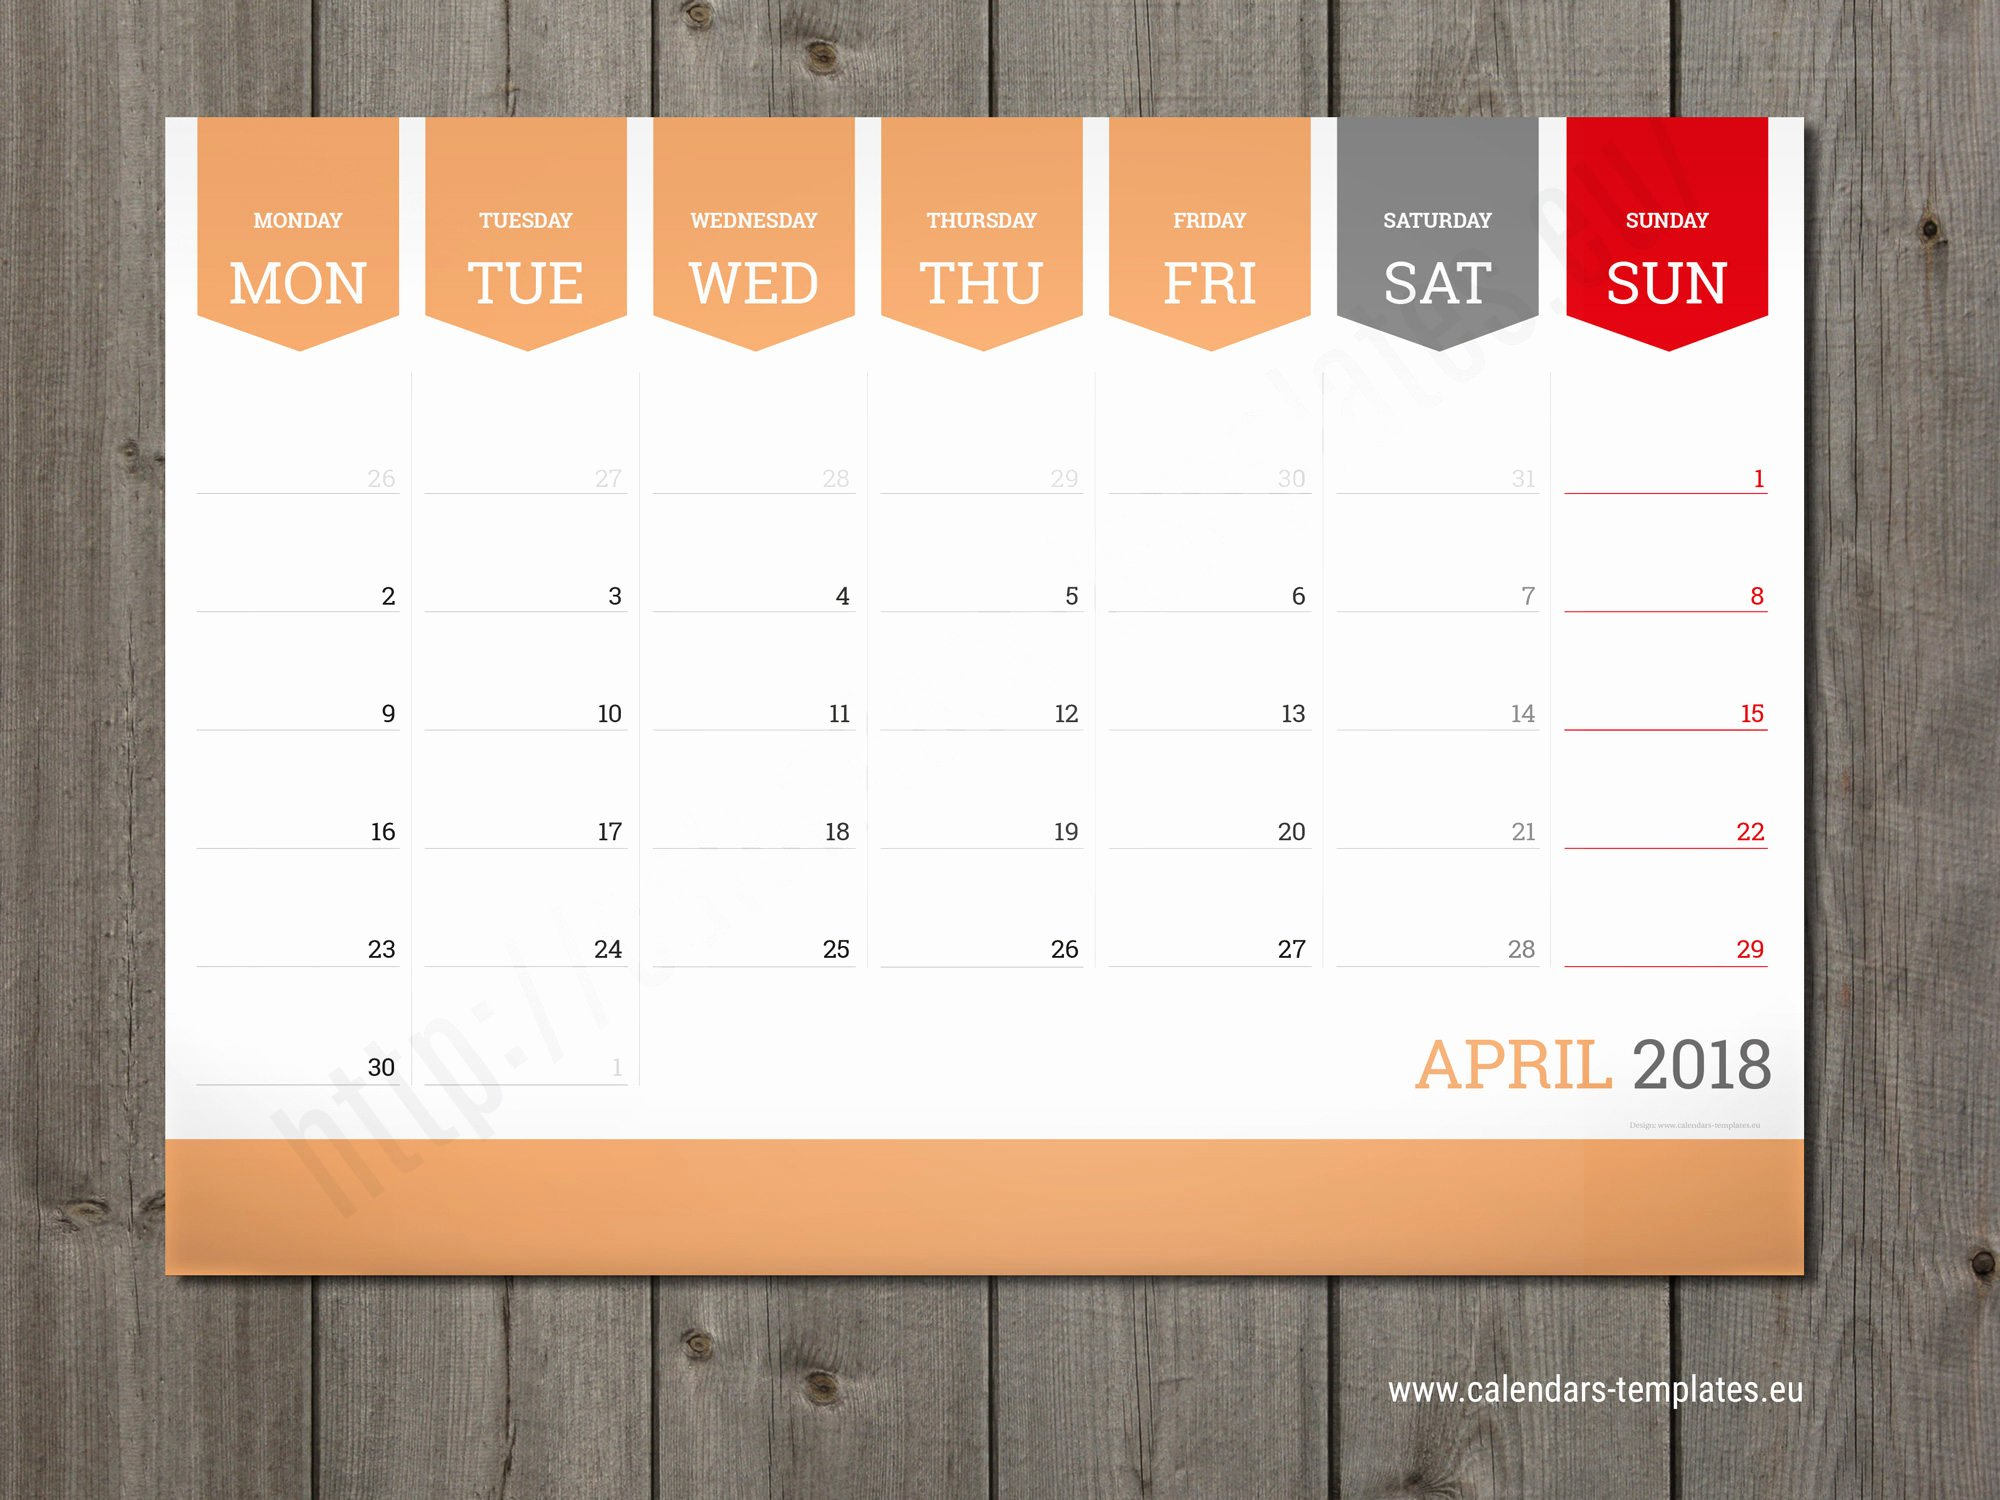 Monthly Calendar Schedule Template Awesome 12 Month Wall and Desk Planner Calendar Agenda 2018 Template